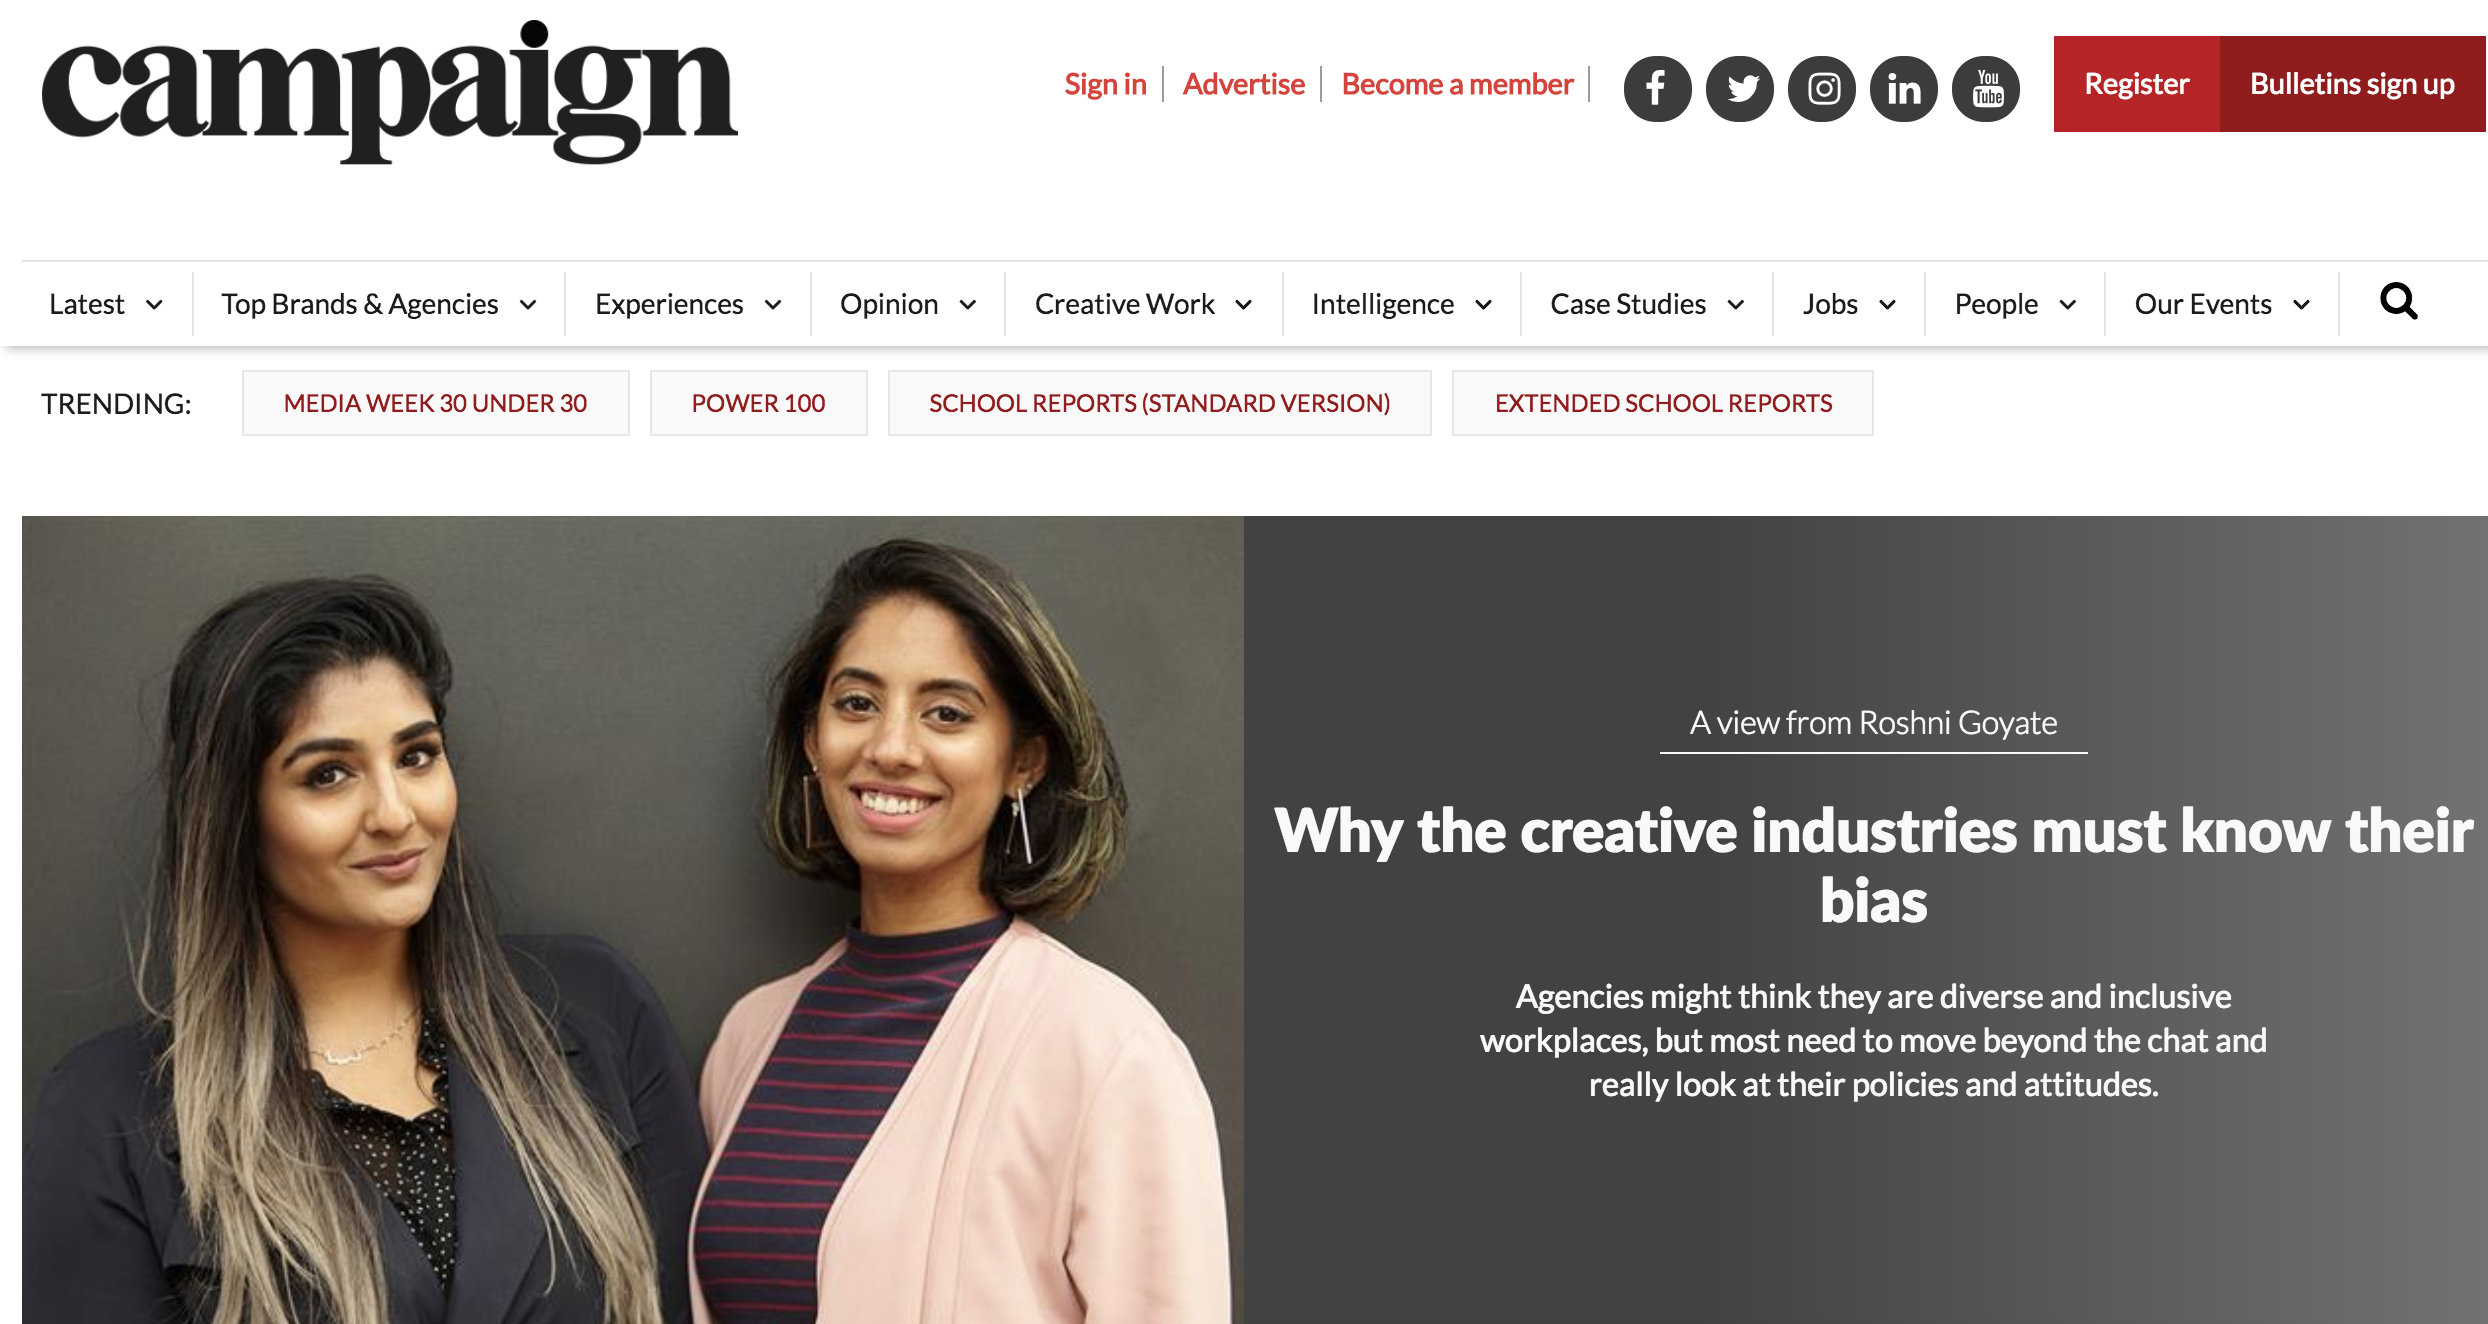 CAMPAIGN MAGAZINE  ARTICLE  Roshni recently penned an article for Campaign Magazine on why the creative industries must know their bias and an intro to our Know Your Bias workshops. You can read in the link below!